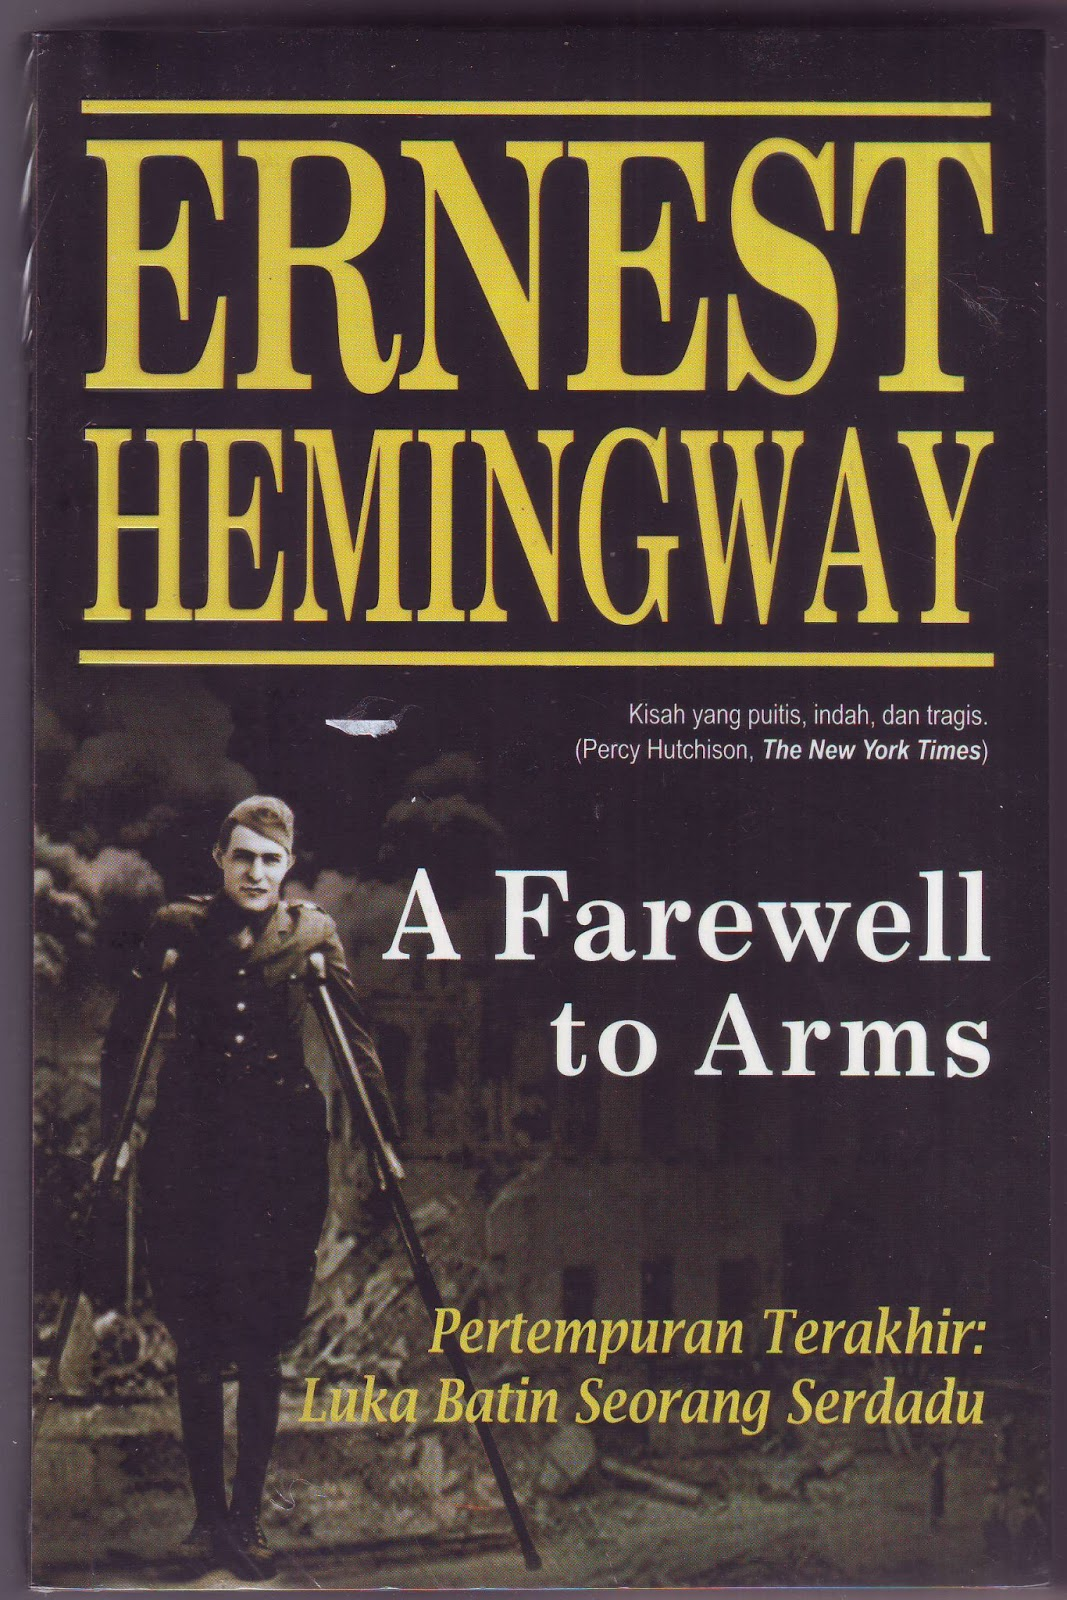 "ernest hemingway a farewell to arms essay Ernest hemingway (1899-1961), born in oak park, illinois, started his  the  purpose of this essay, however, is not to create justice for hemingway  3 judith  fetterly, a farewell to arms: ""hemingway's resentful cryptogram"", in the  resisting."